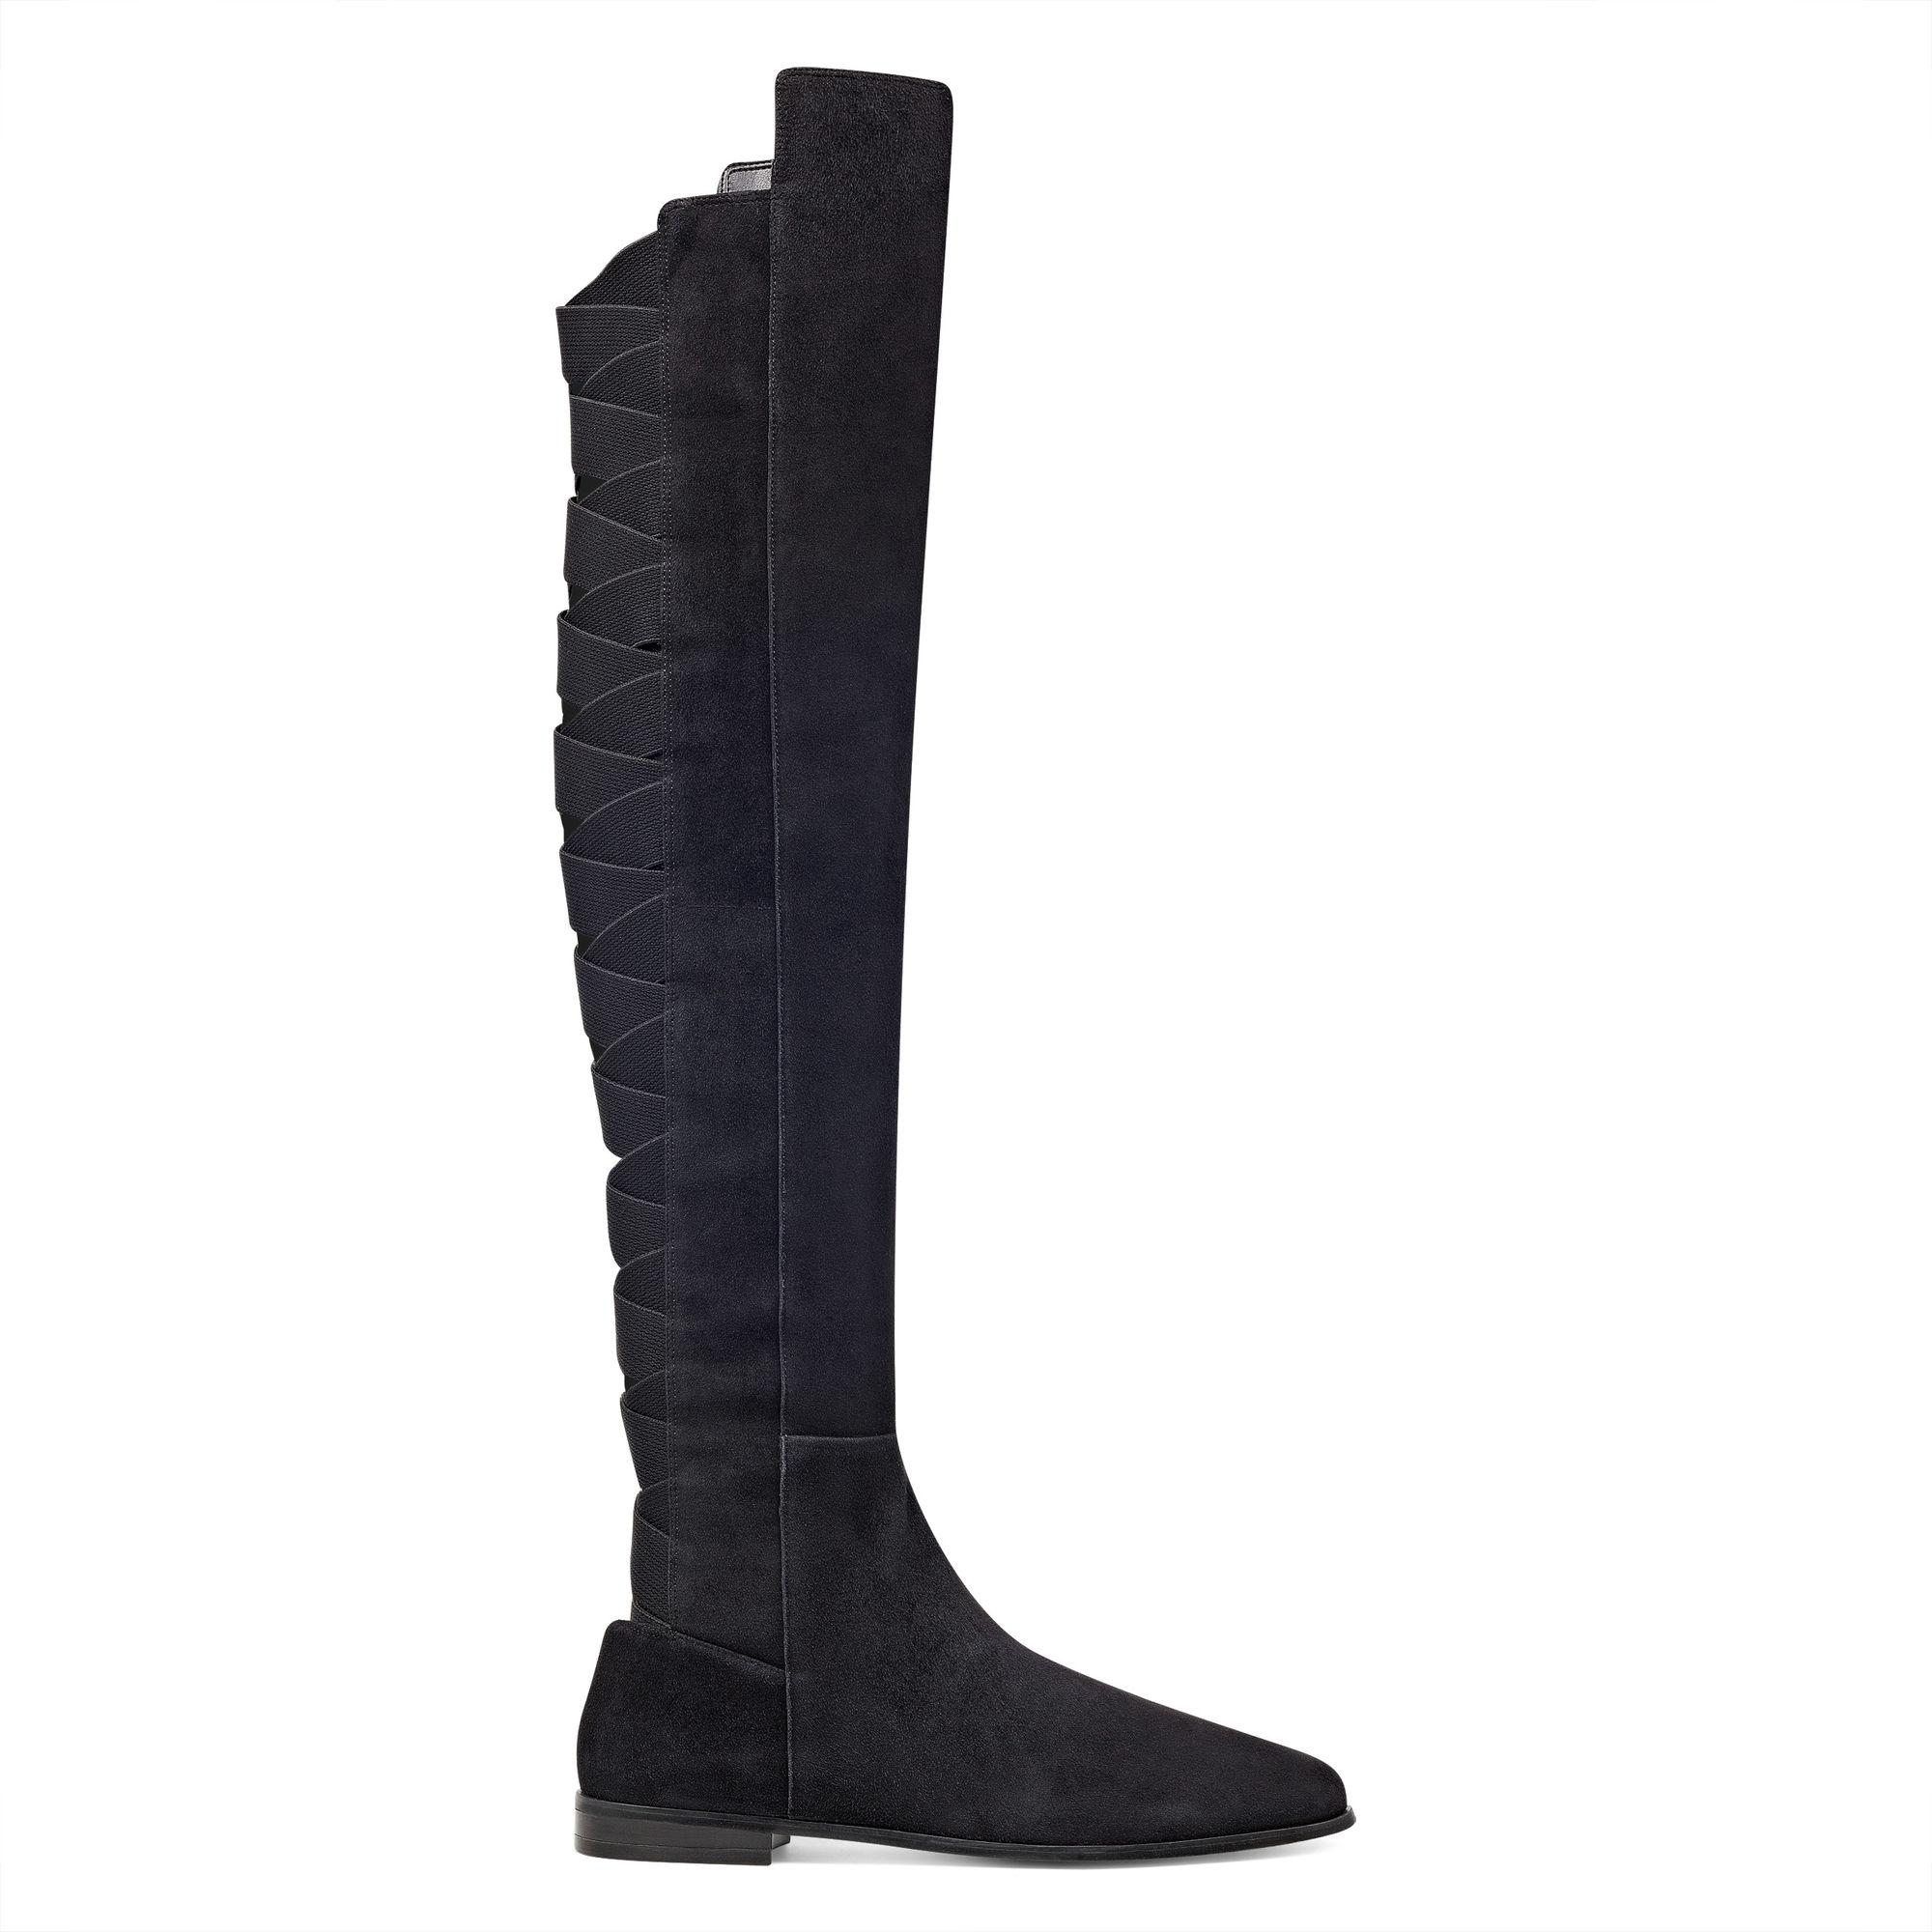 5525ec60b72 Lyst - Nine West Eltynn Over The Knee Boots in Black